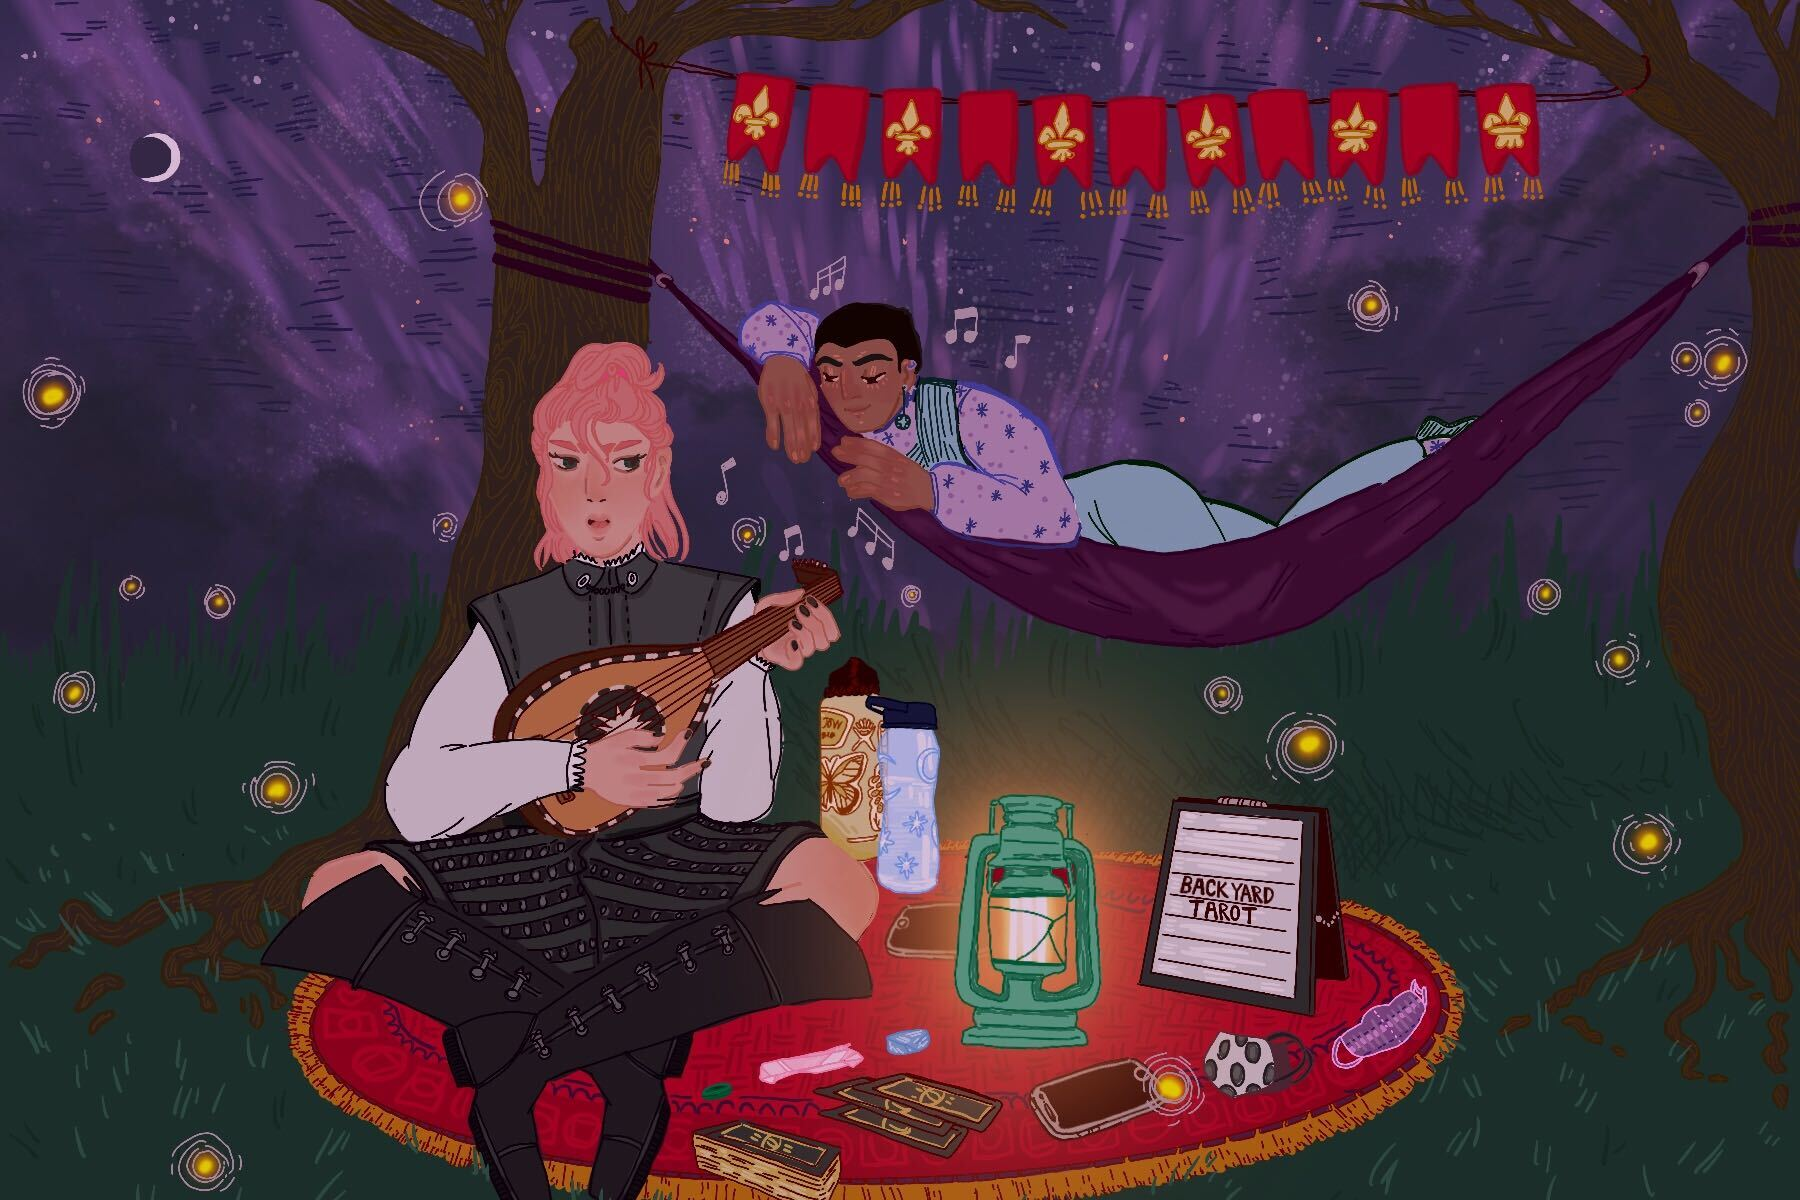 Illustration of two people at a campsite, one sitting on a blanket playing a mandolin, the other behind them in a hammock, in an article about friends flaking on plans.